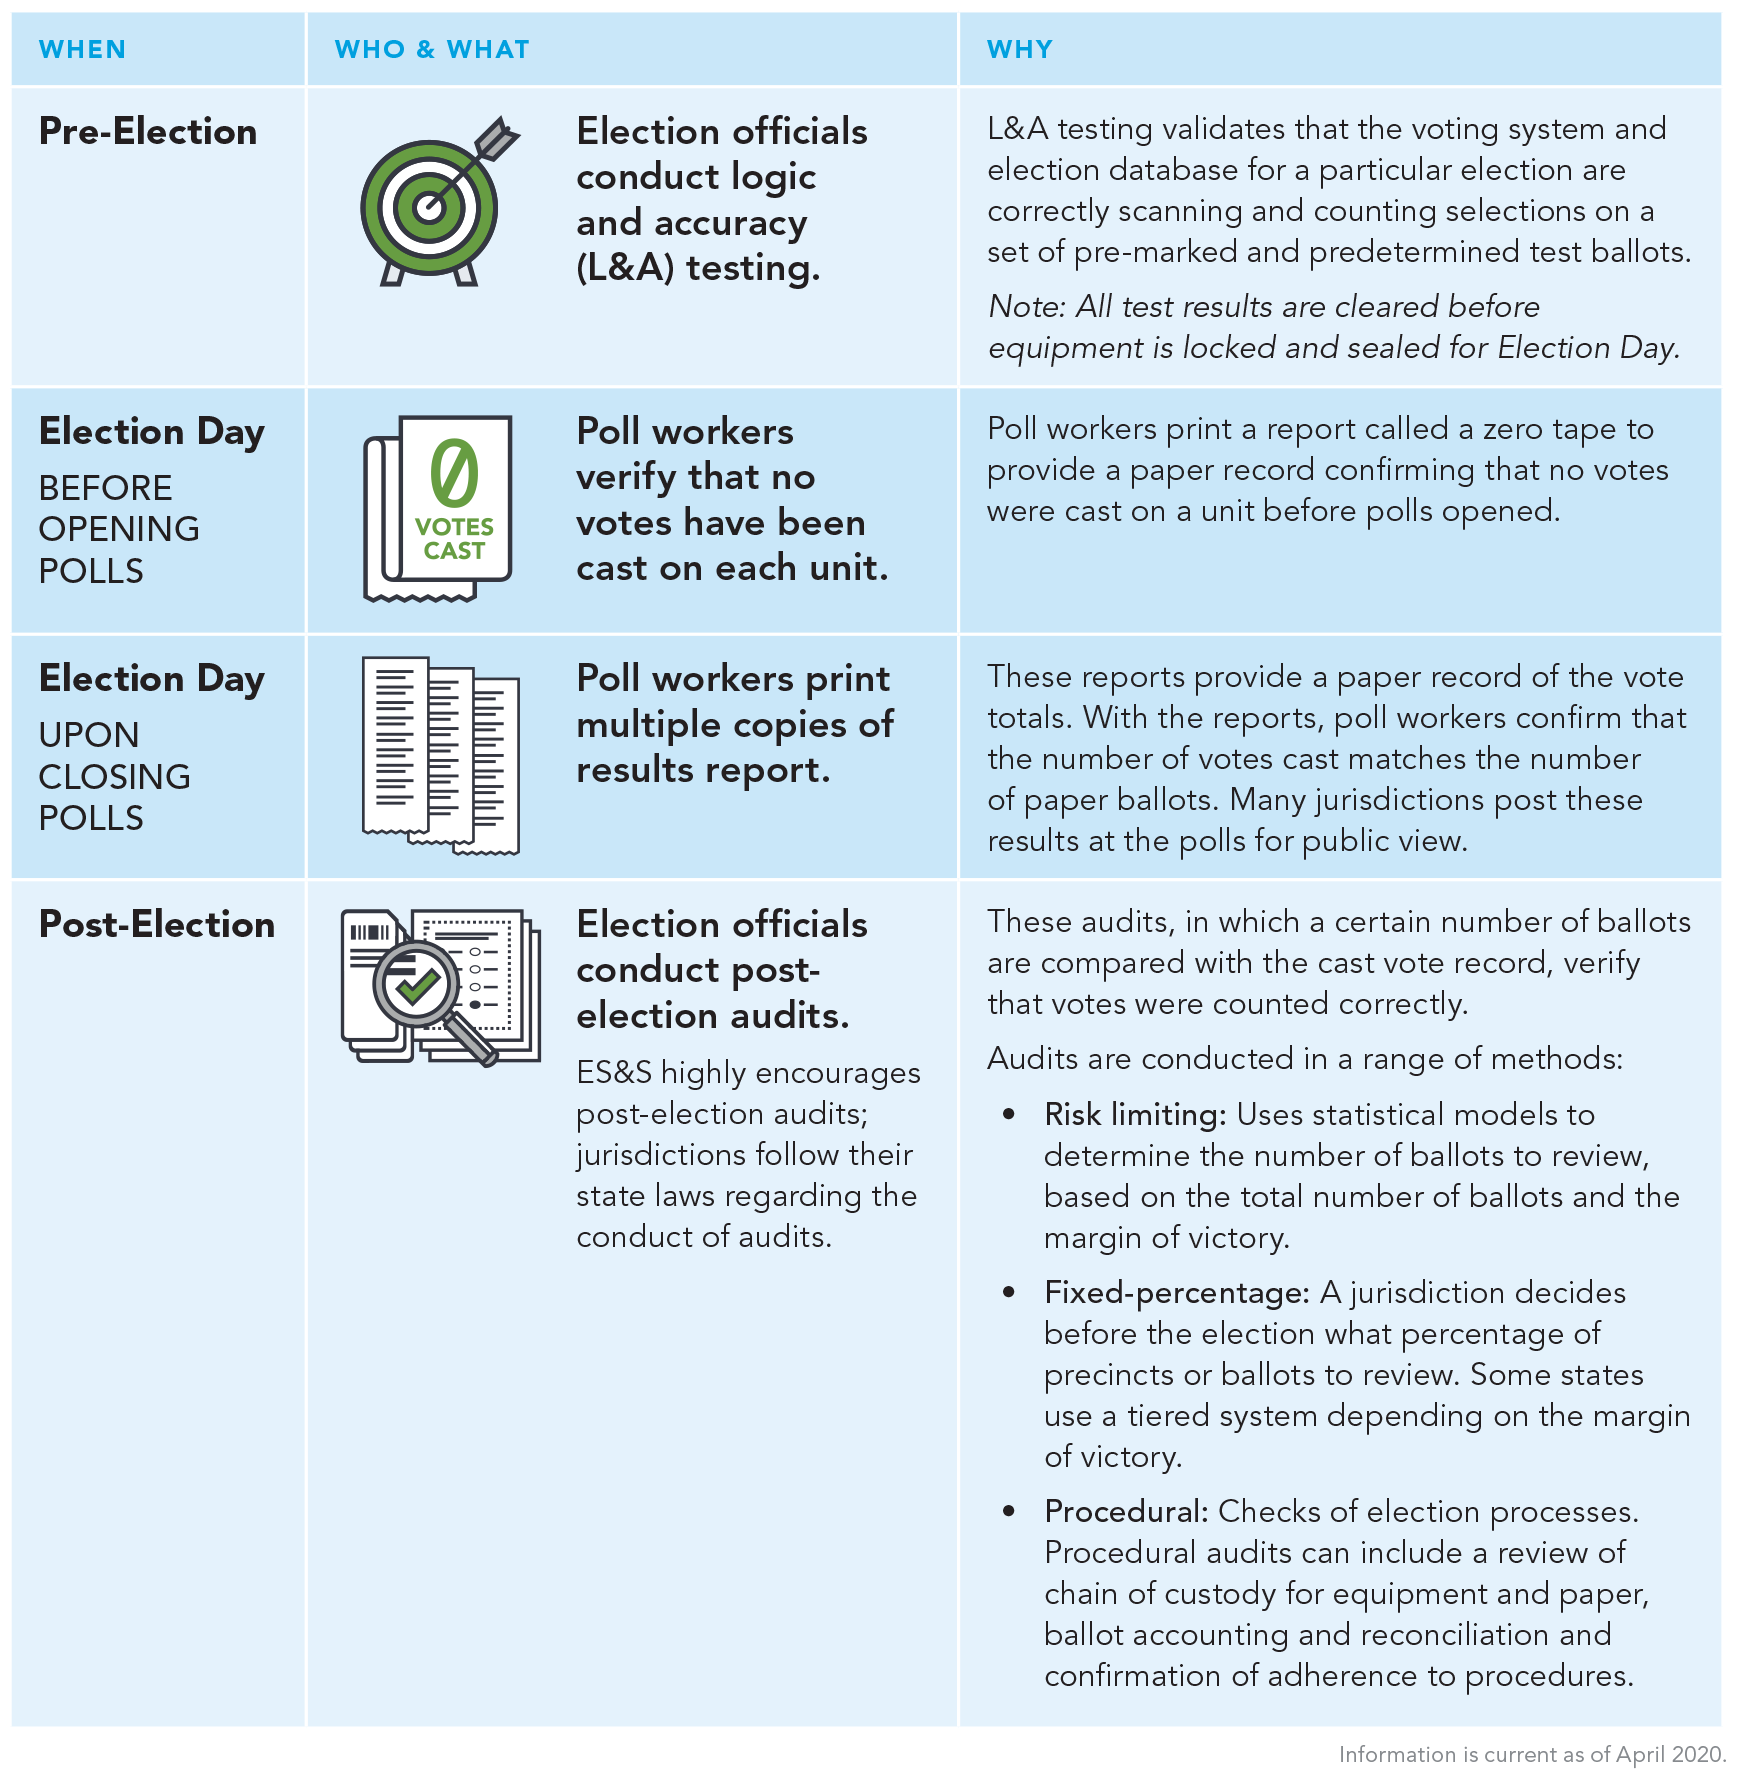 Table describing the major steps in verifying election accuracy, including conducting logic and accuracy testing, verifying that no votes have been cast before polls open, printing multiple copies of results after polls close, and conducting post-election audits.